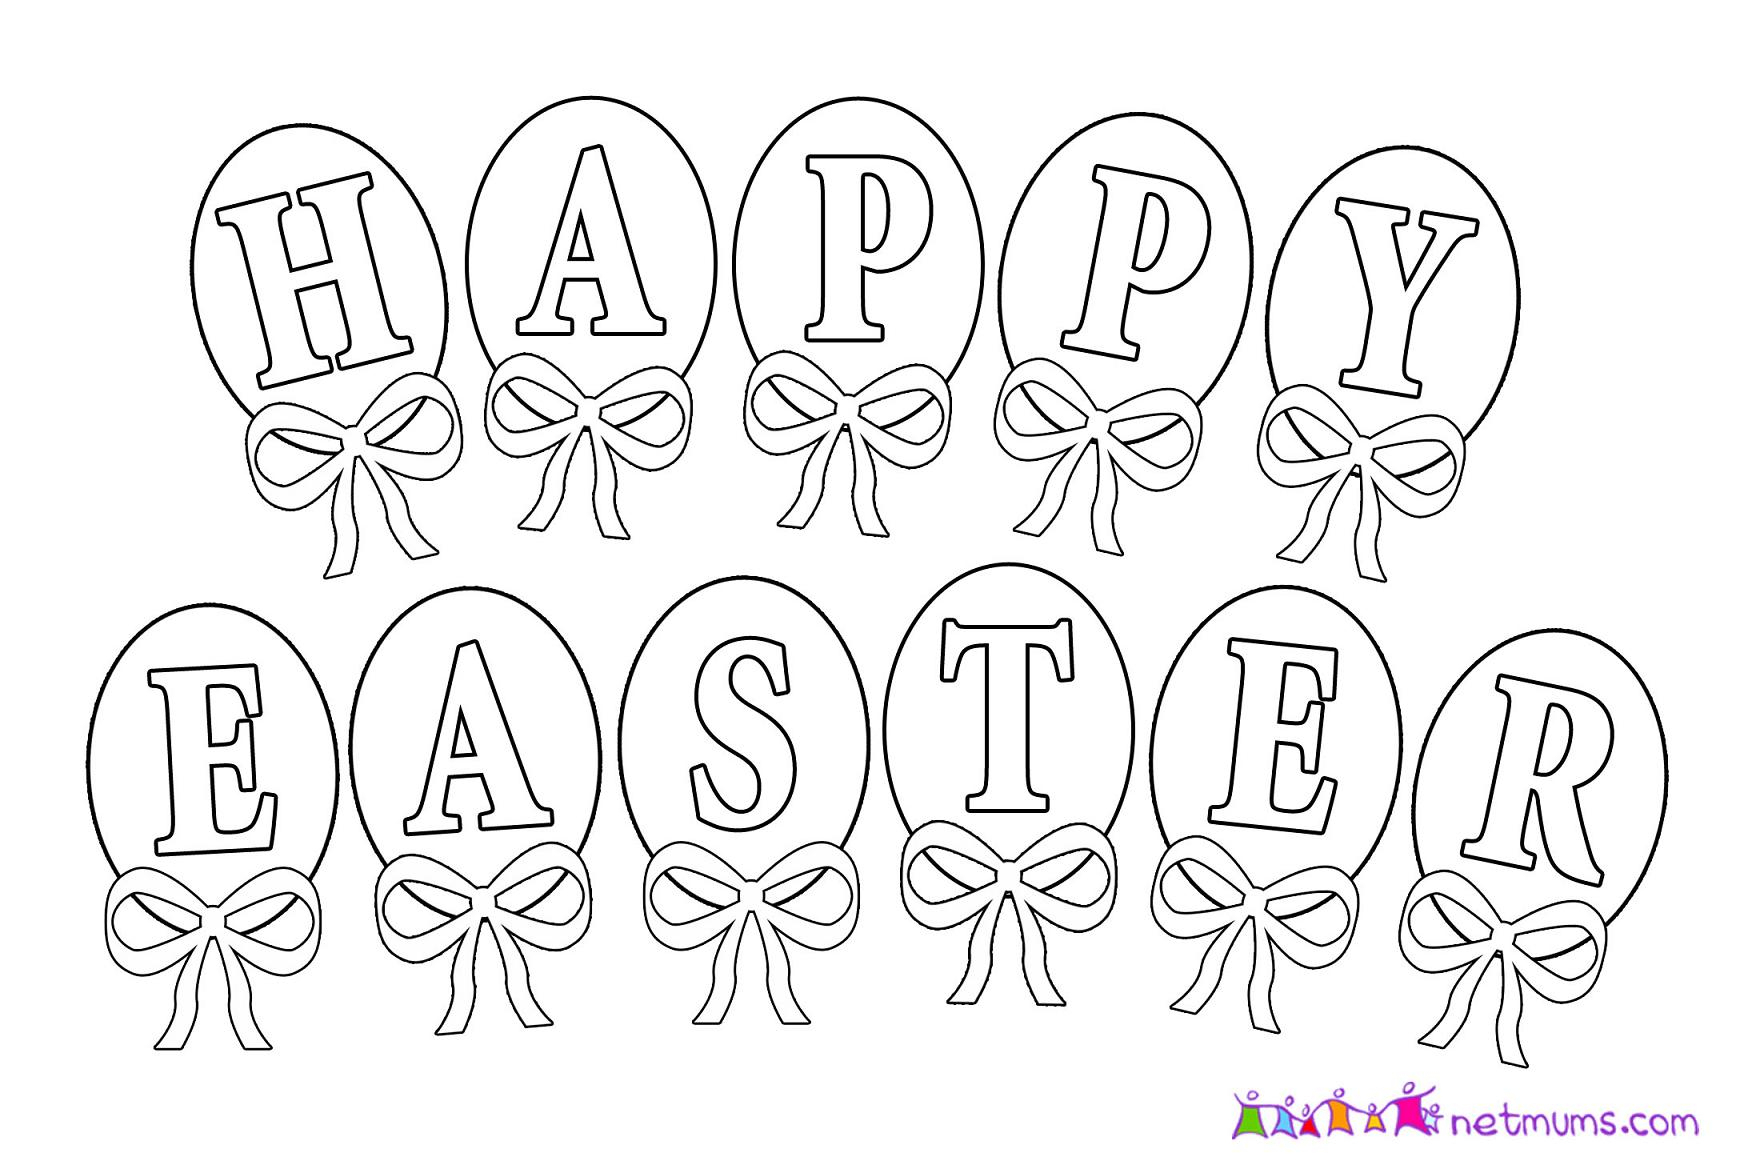 Coloring Pages: Phenomenal Free Printable Easter Coloring Pages - Free Printable Easter Pages